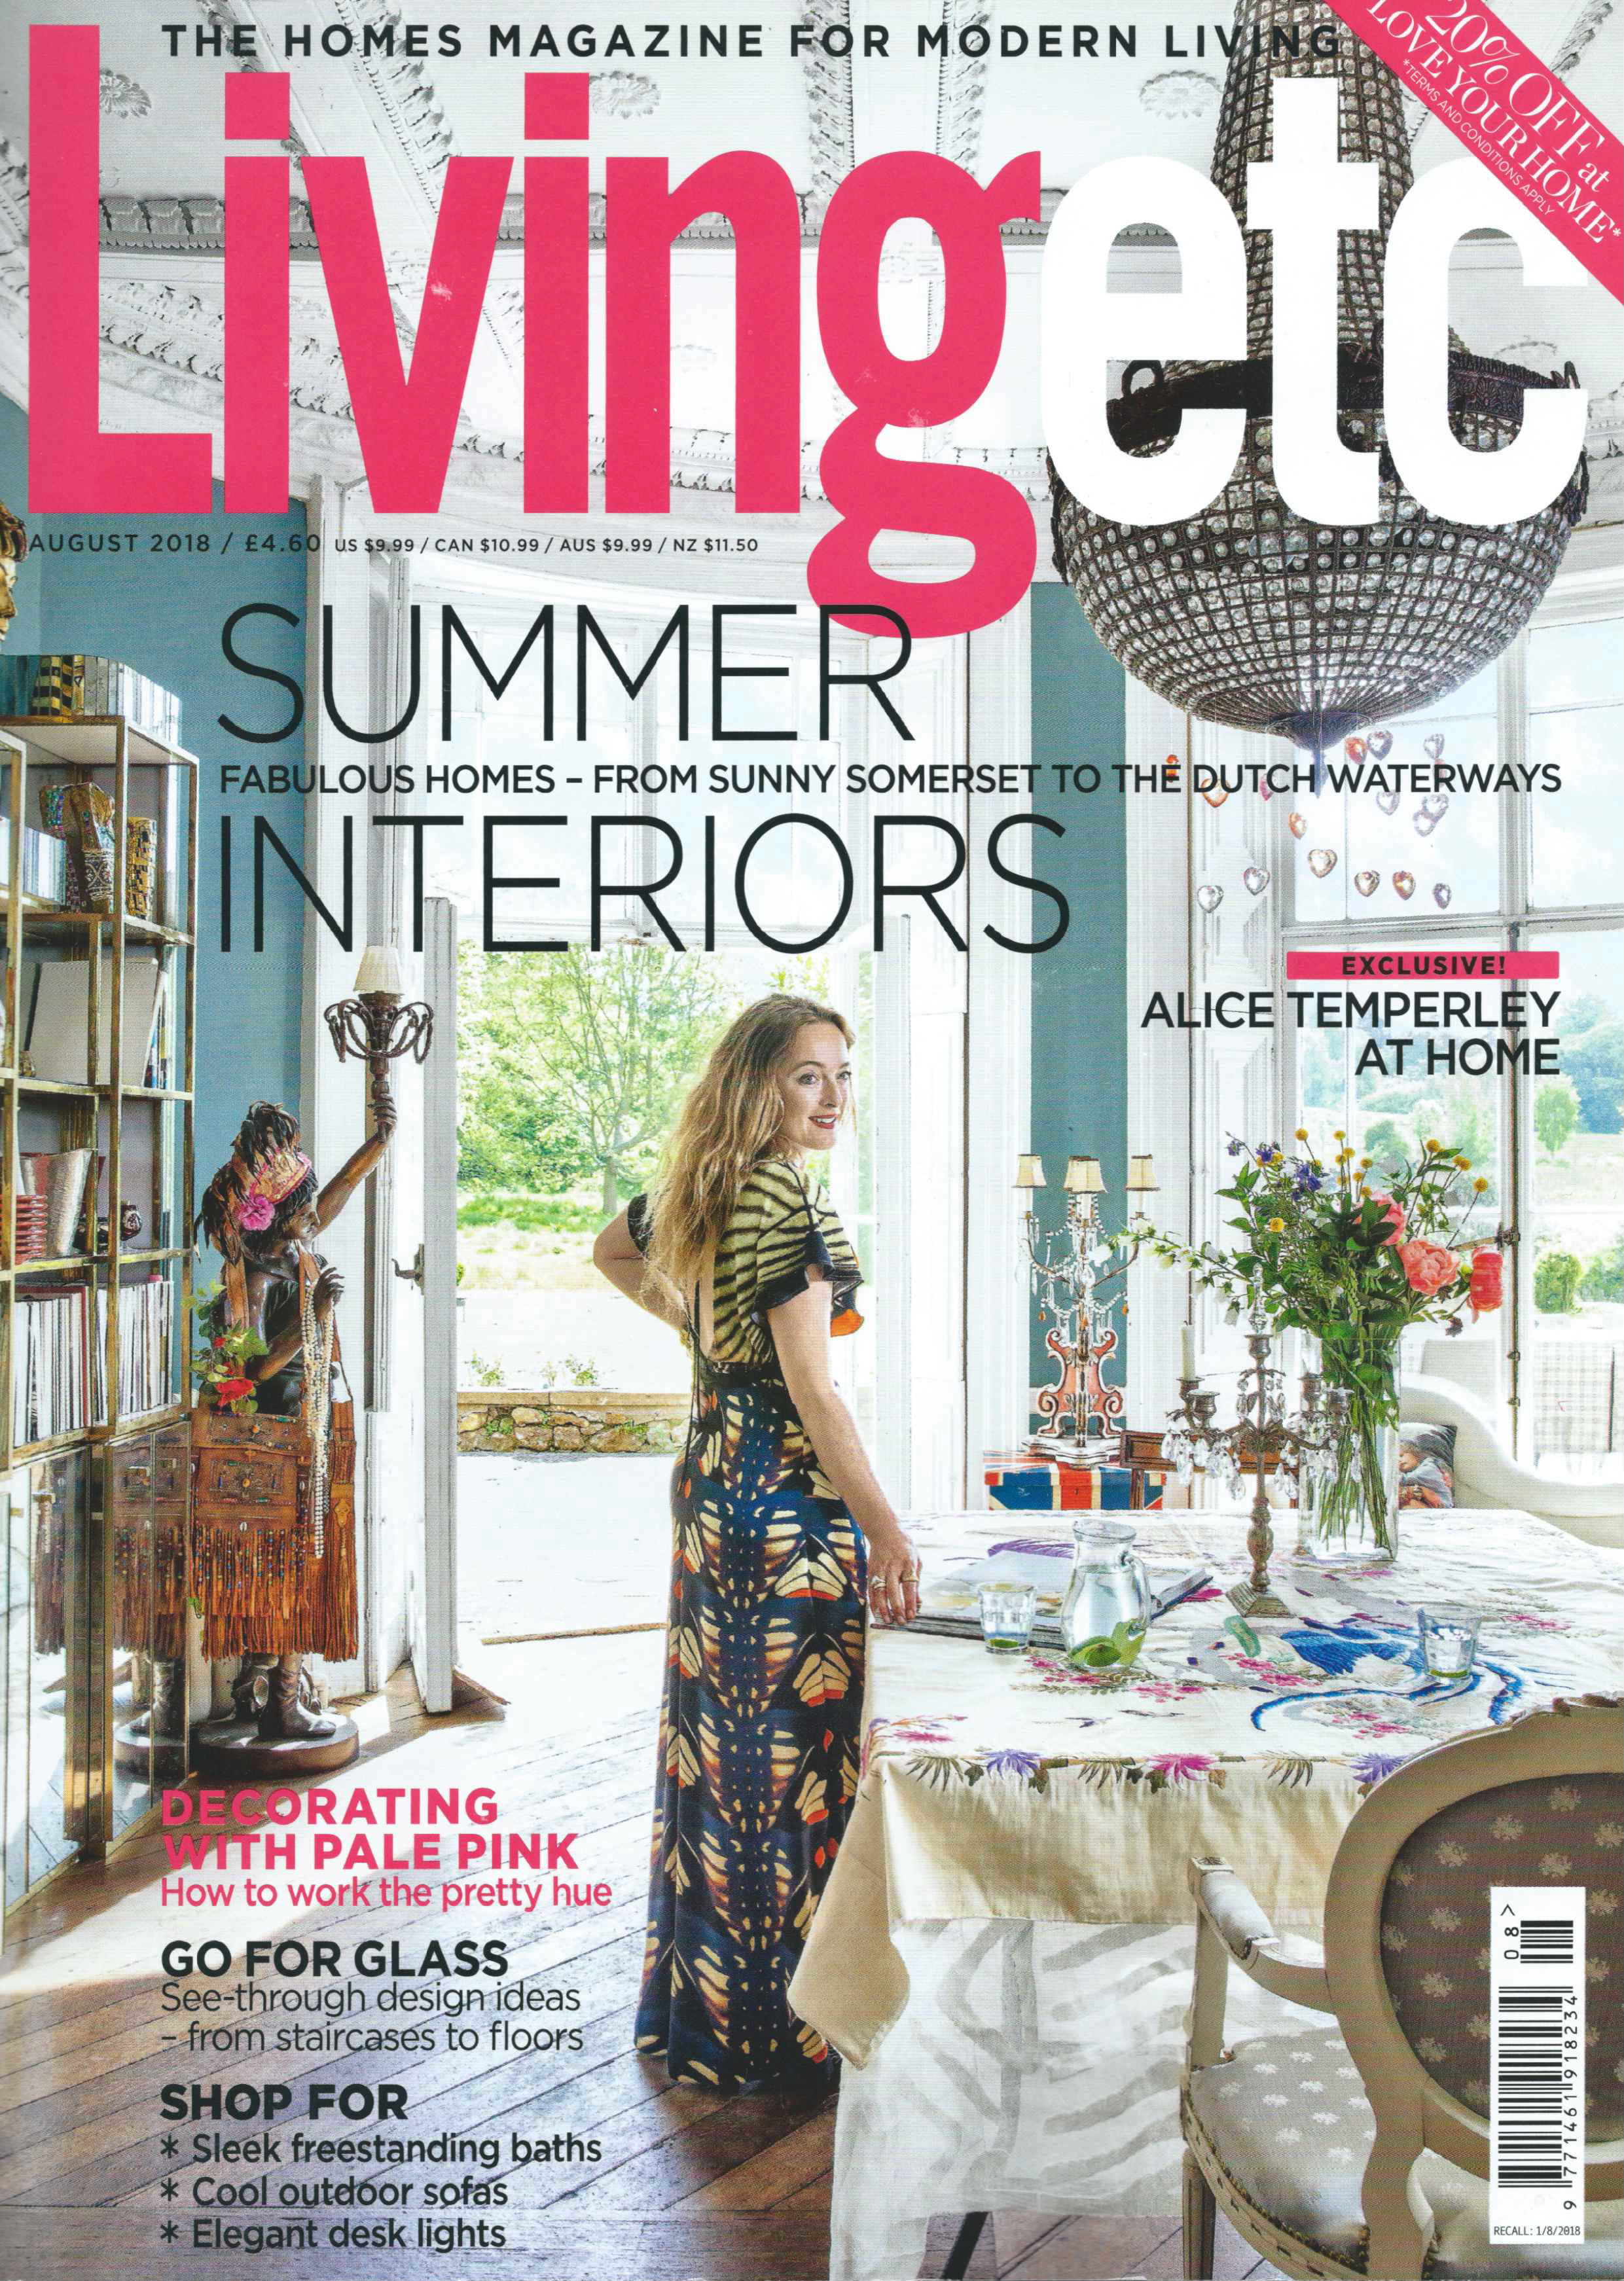 Living etc - August 2018 issue